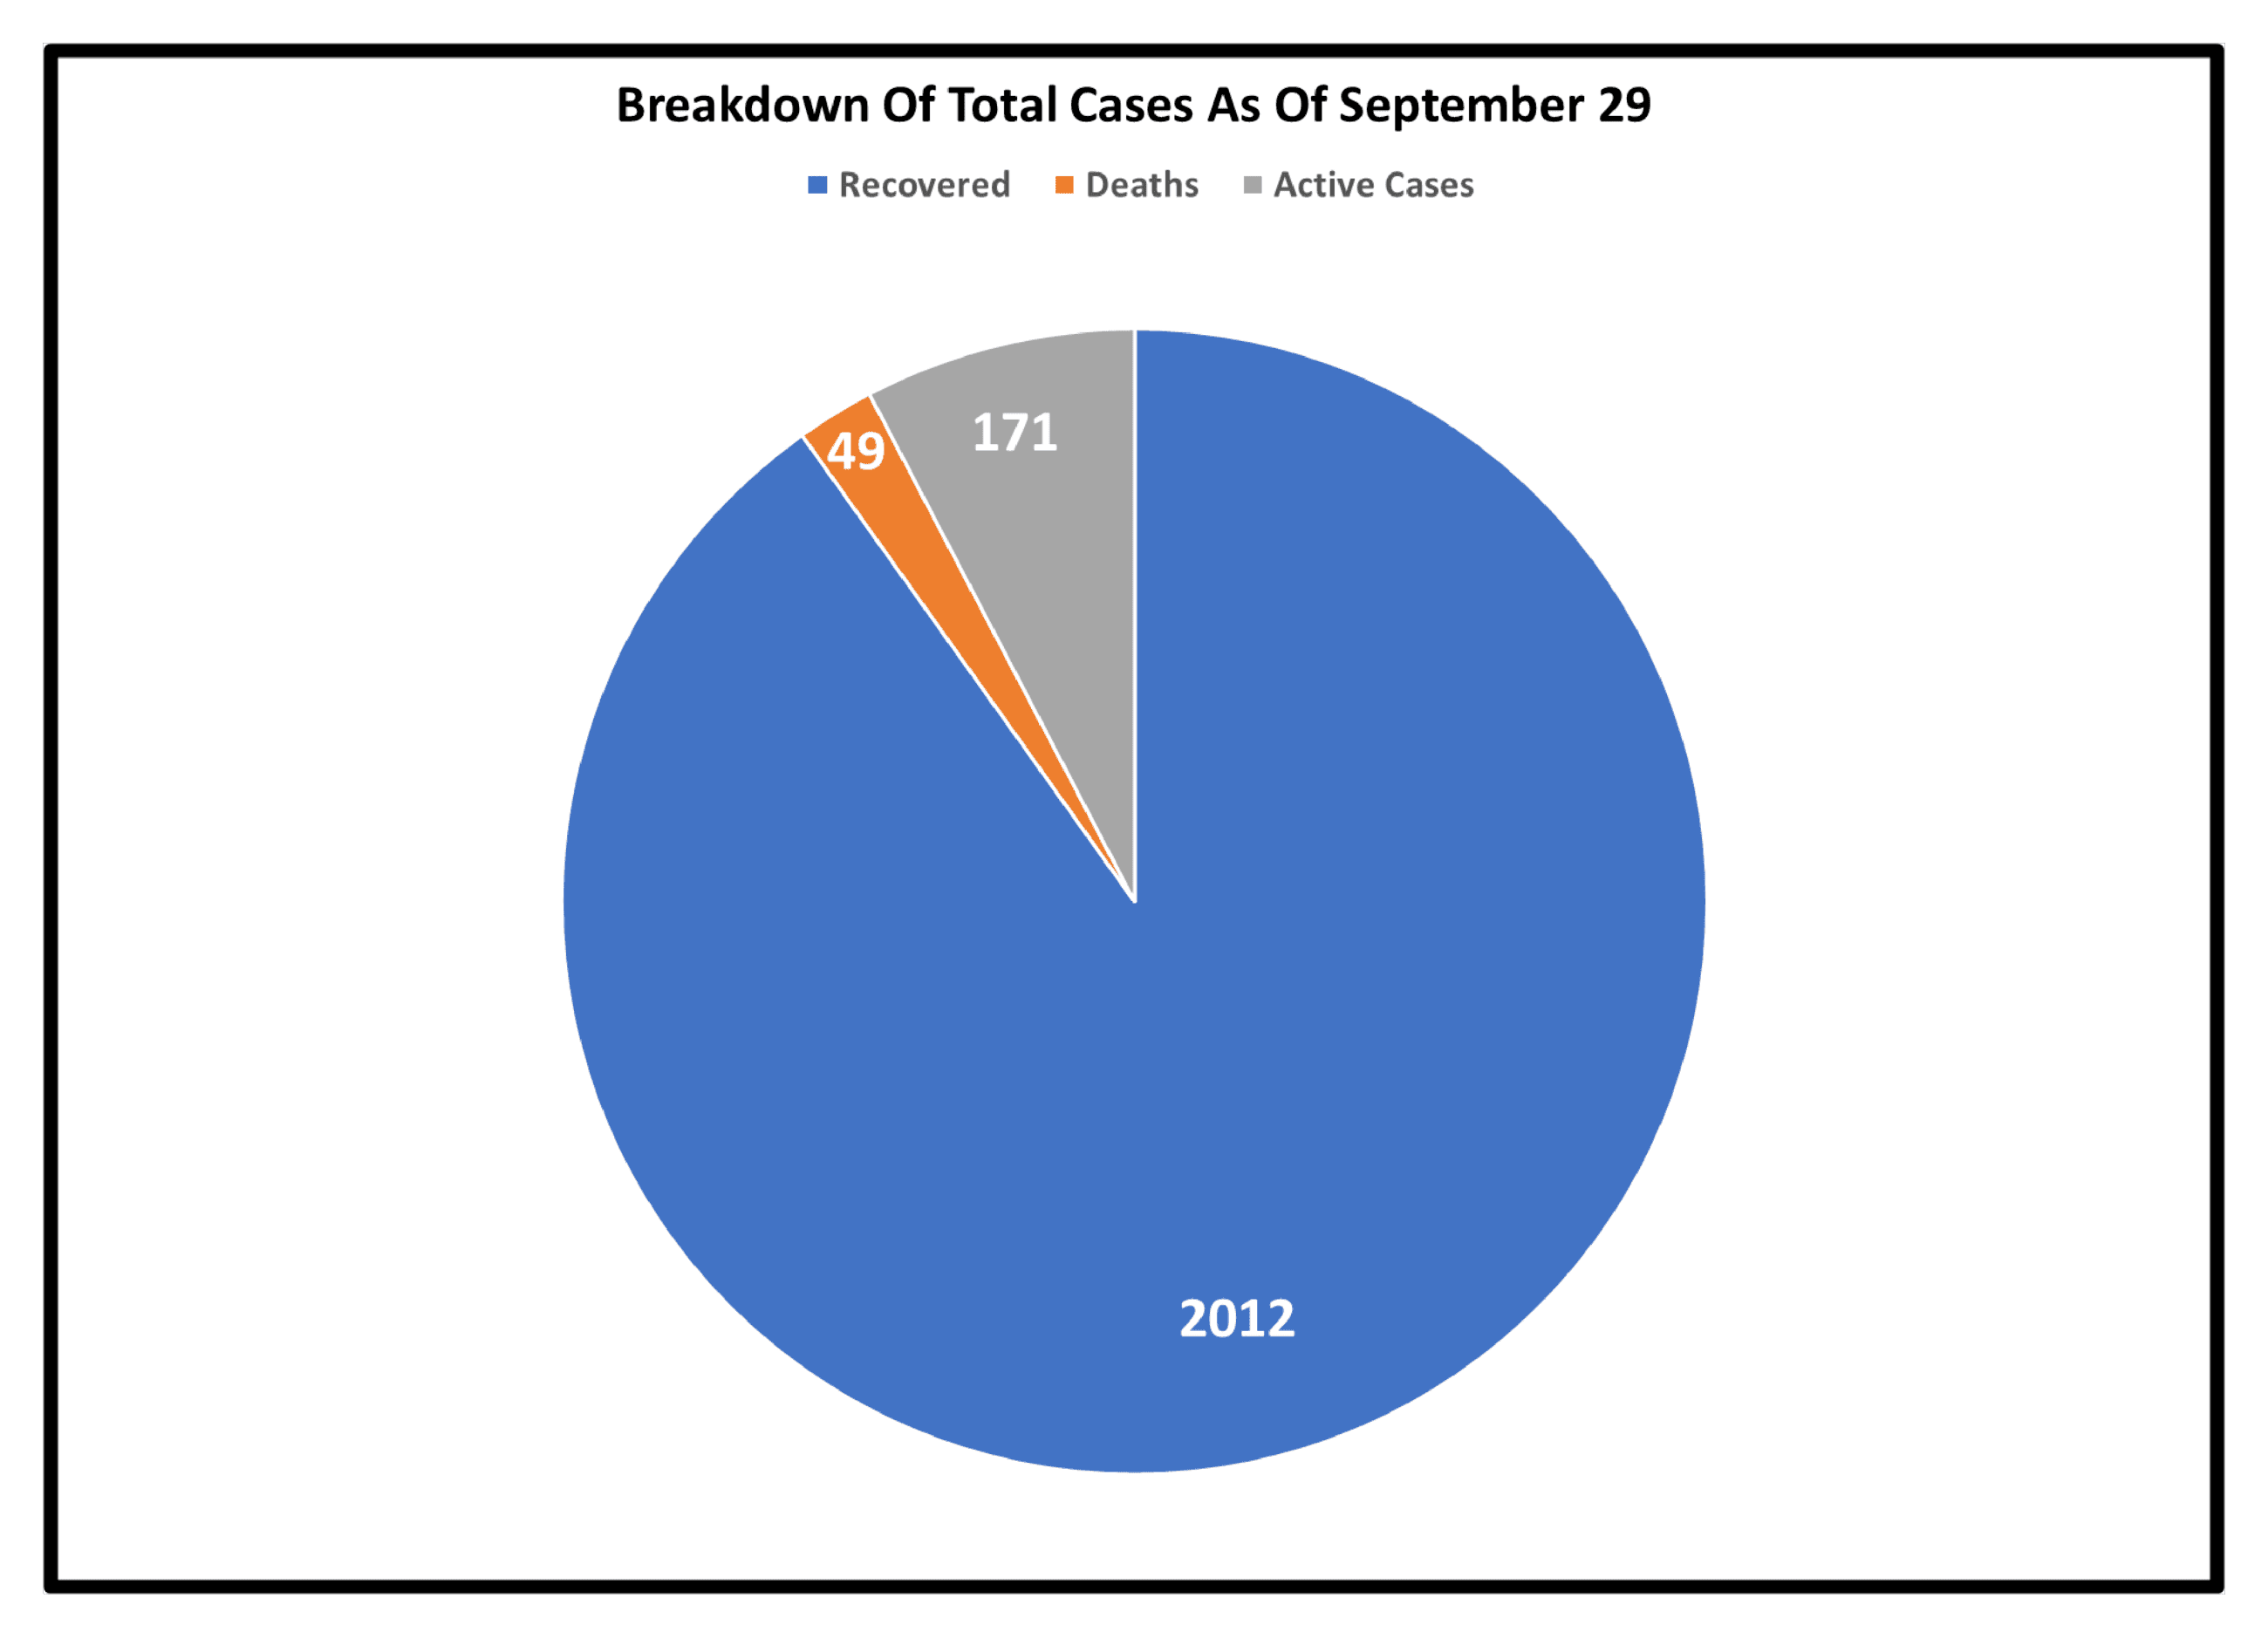 Breakdown of Cases As Of September 29